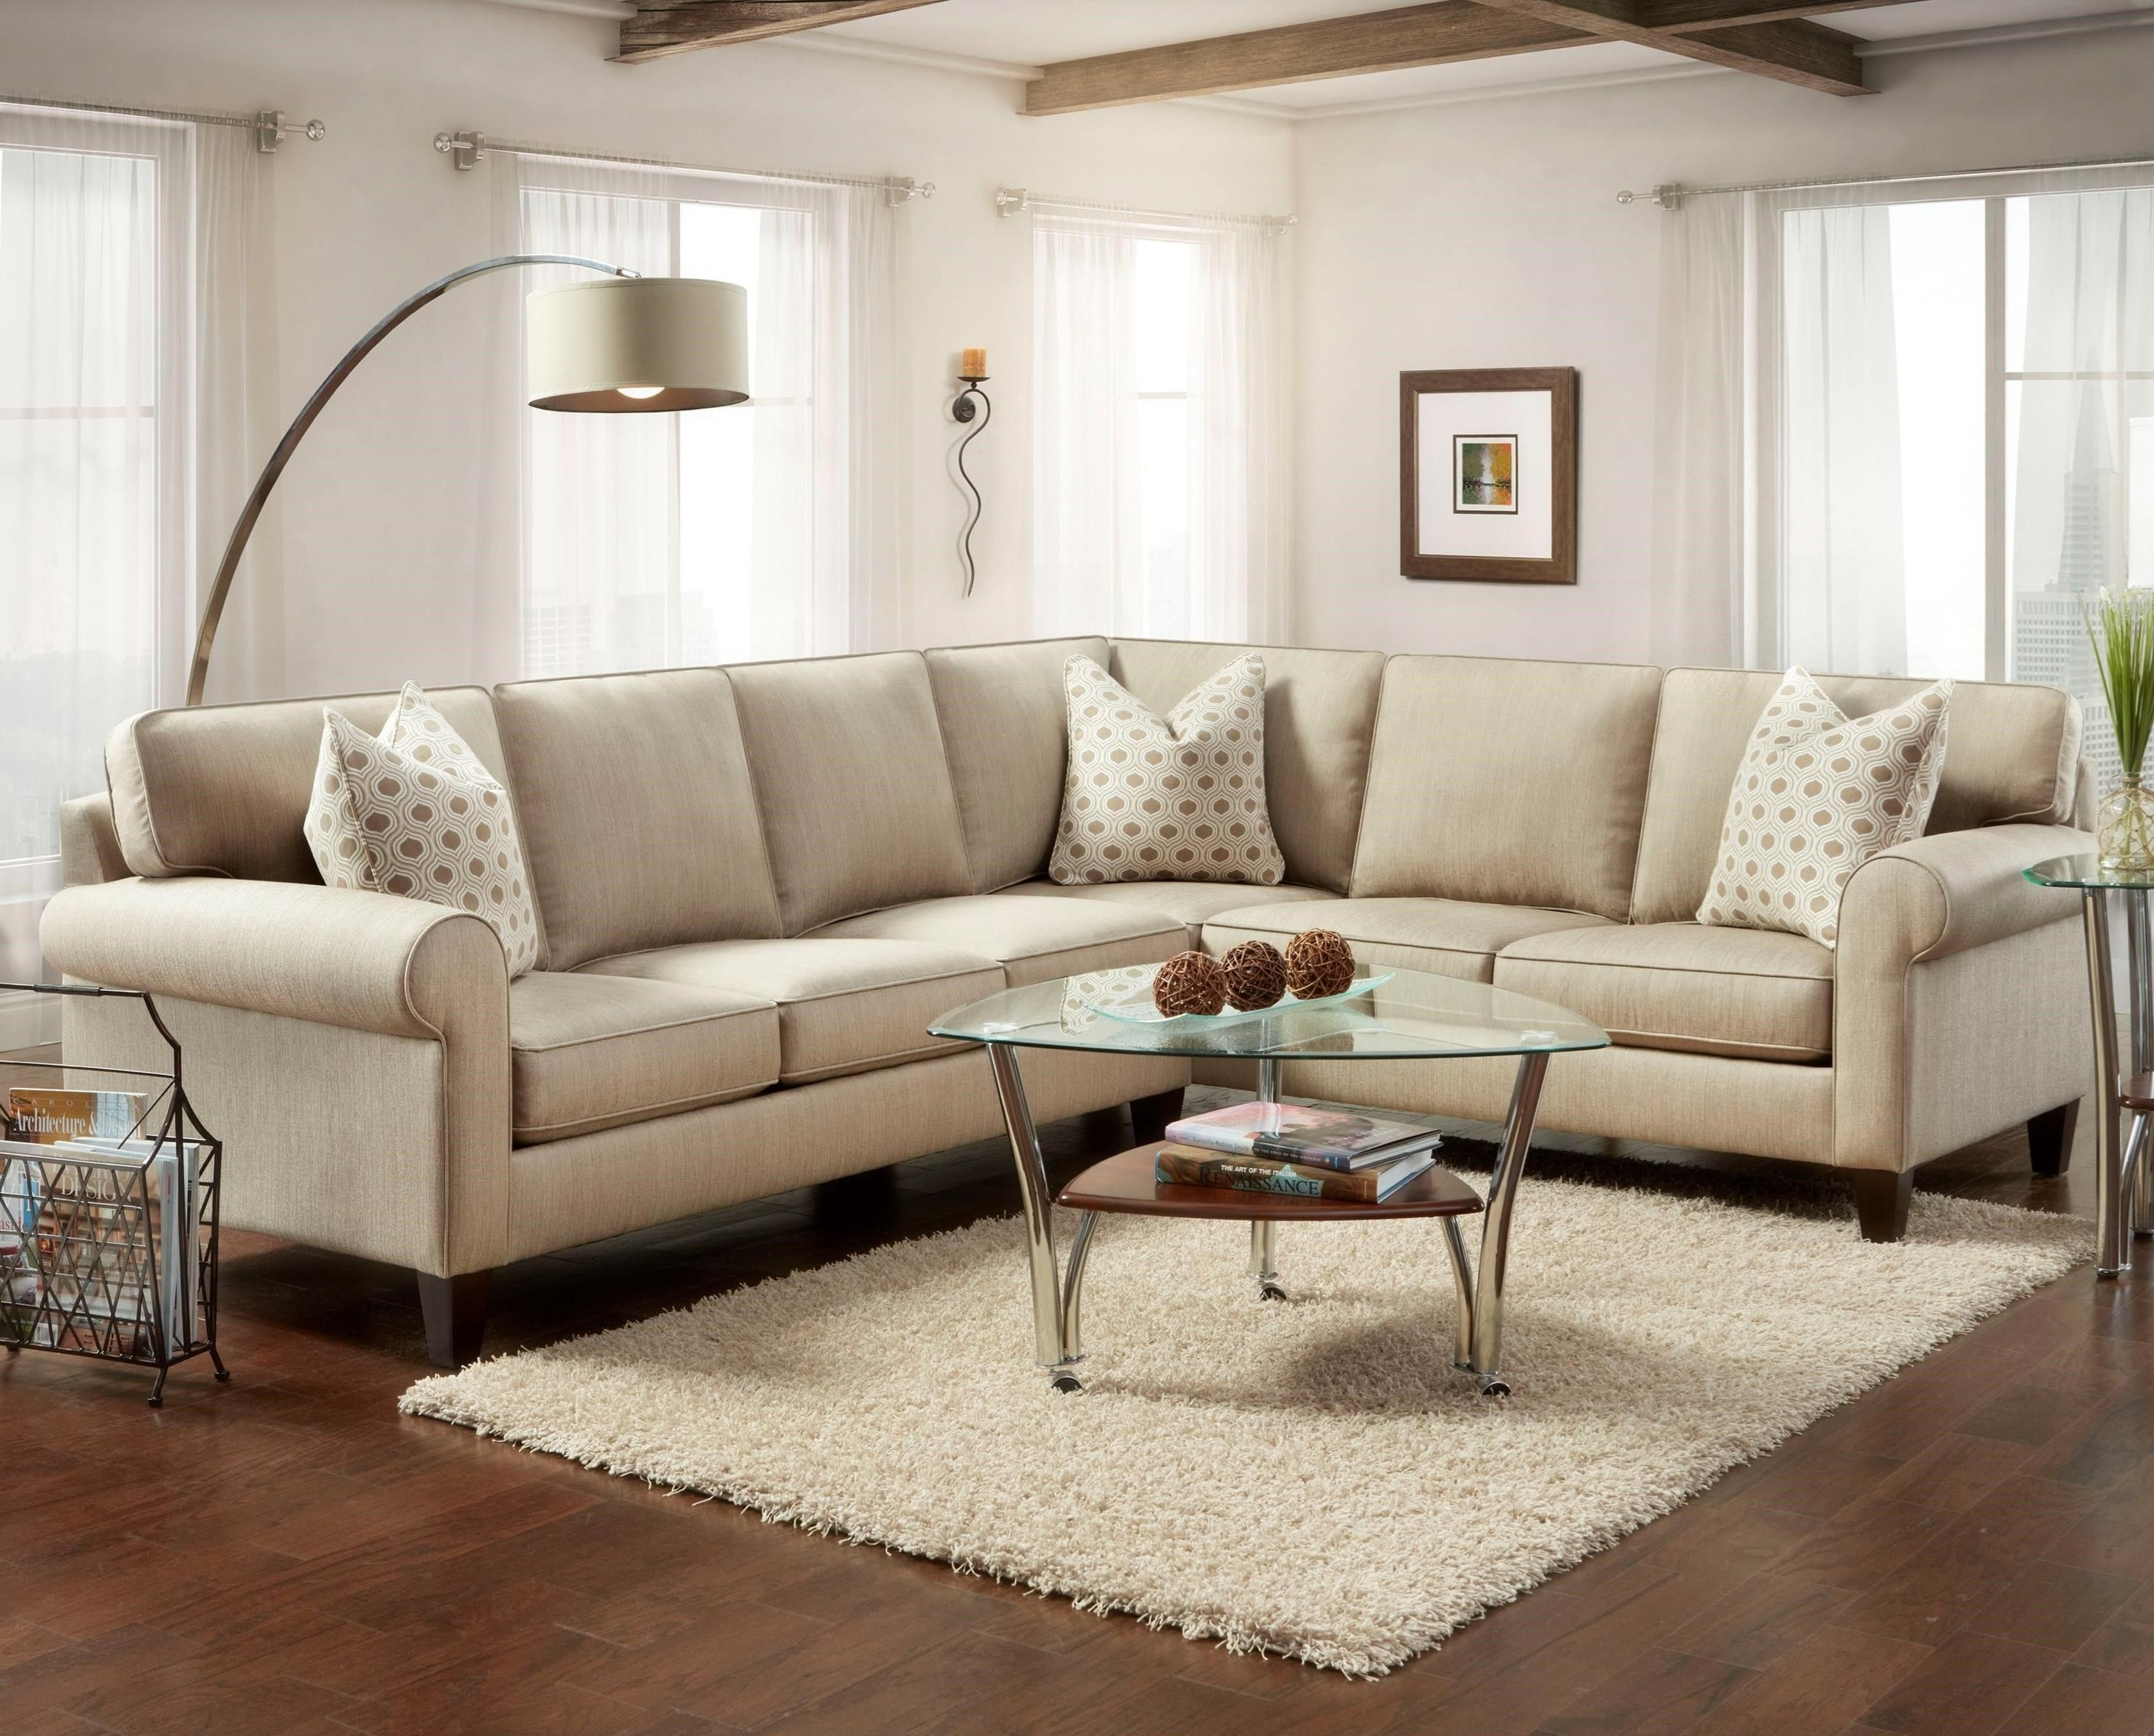 714 2 Piece Sectional with Rolled Arms by Bauhaus